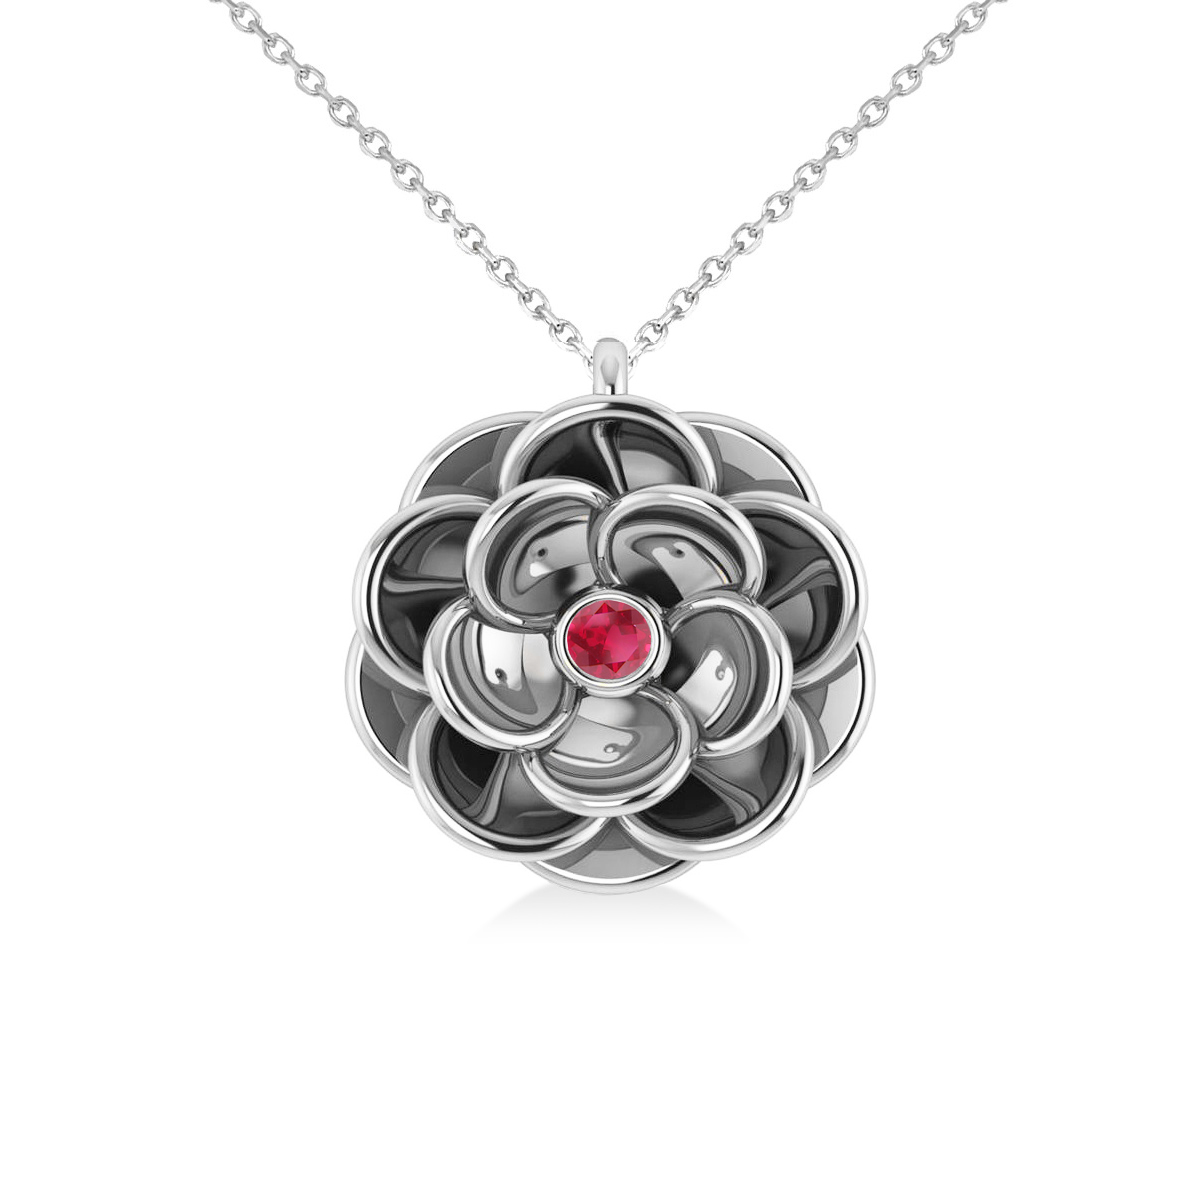 Ruby Round Flower Pendant Necklace 14k White Gold (0.05ct)